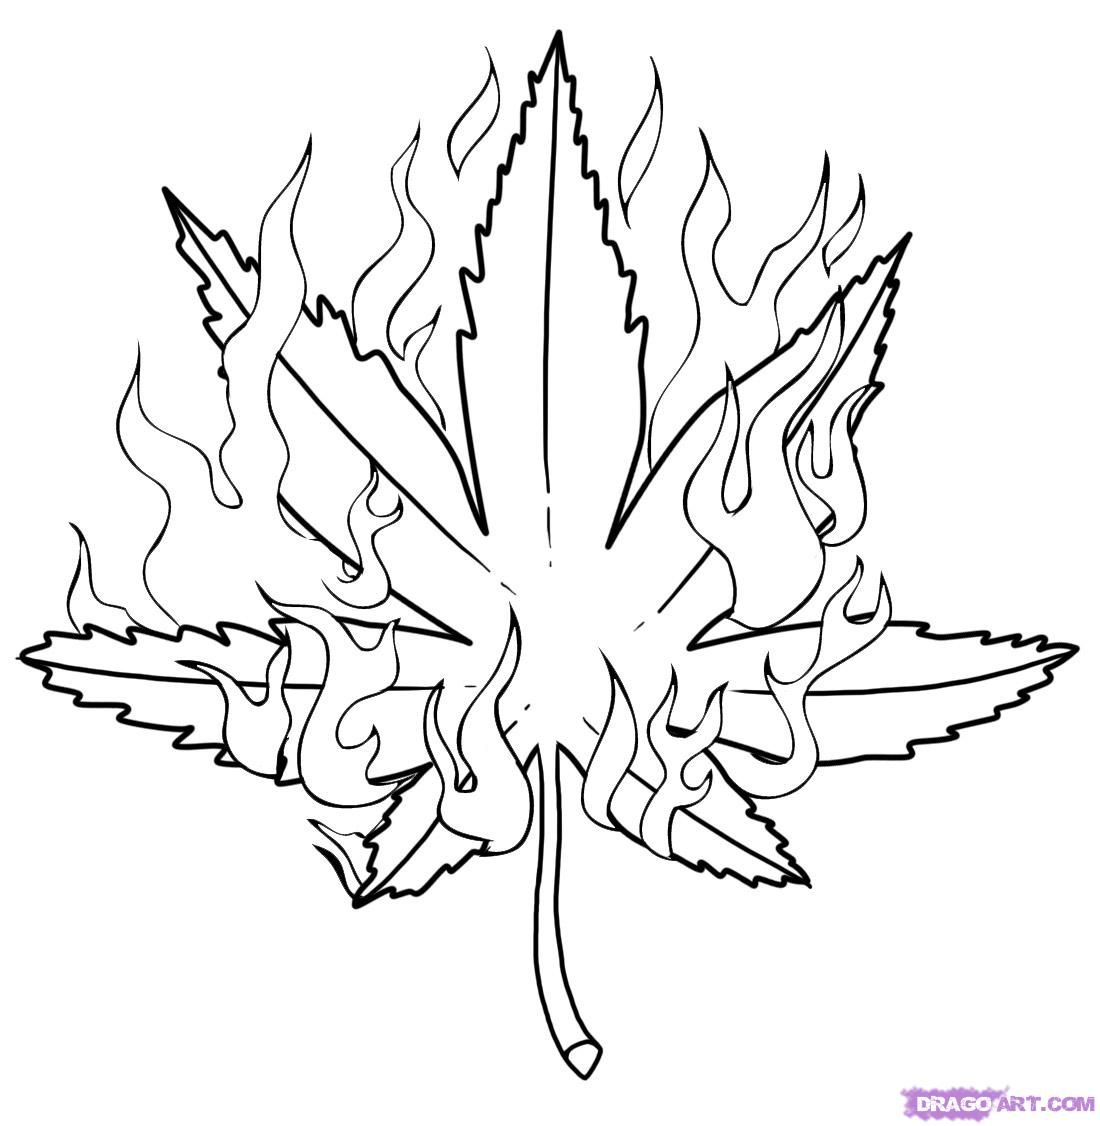 Leaves To Color And Print Coloring Pages For Children Is A